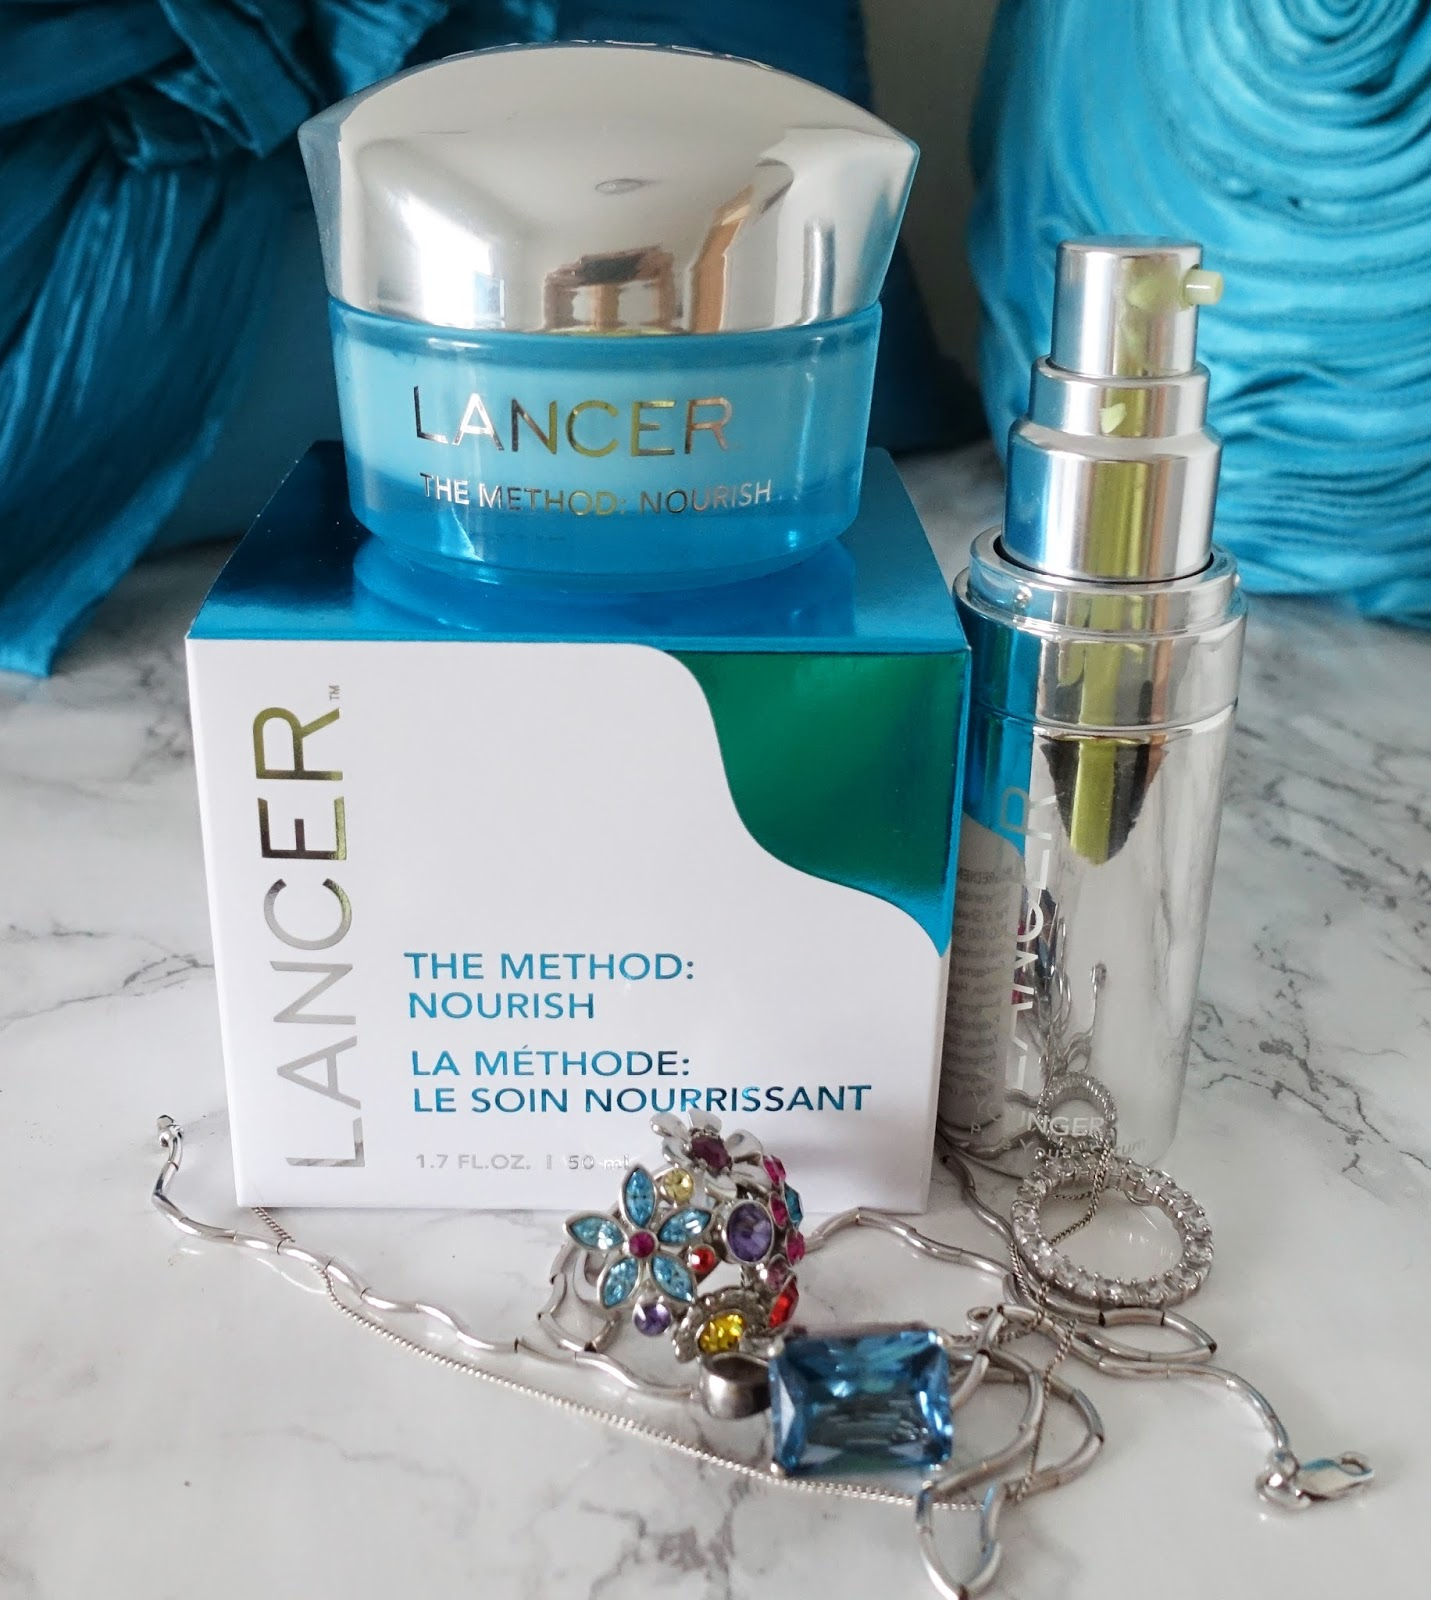 Image showing a close up of Lancer Skincare products Pure Youth Serum and The Method: Nourish. Copyright Is This Mutton?